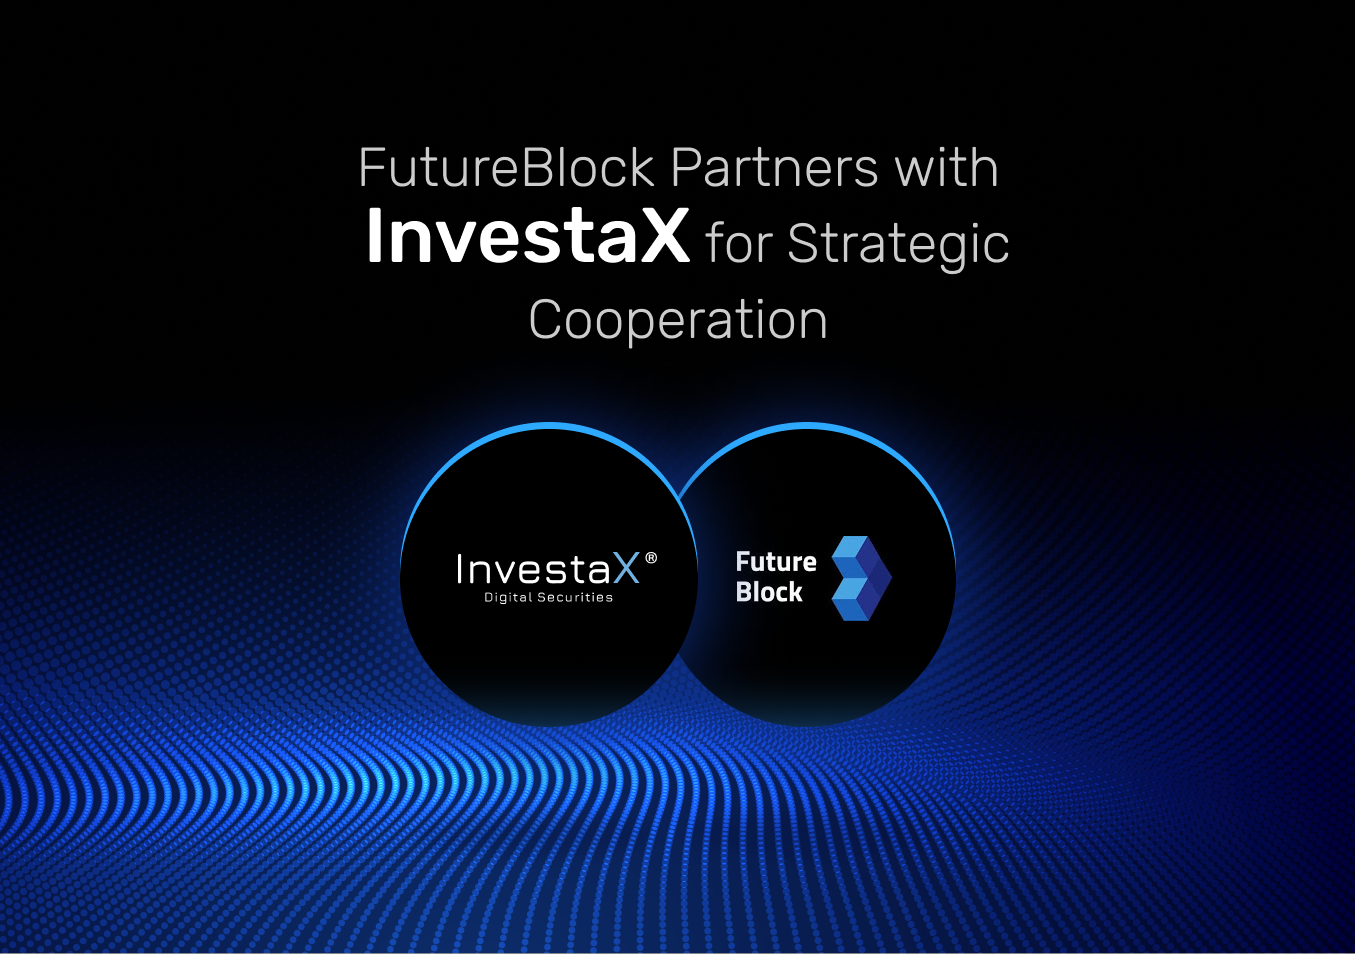 Building Blockchain Products Together: Meet Our Partner - InvestaX!